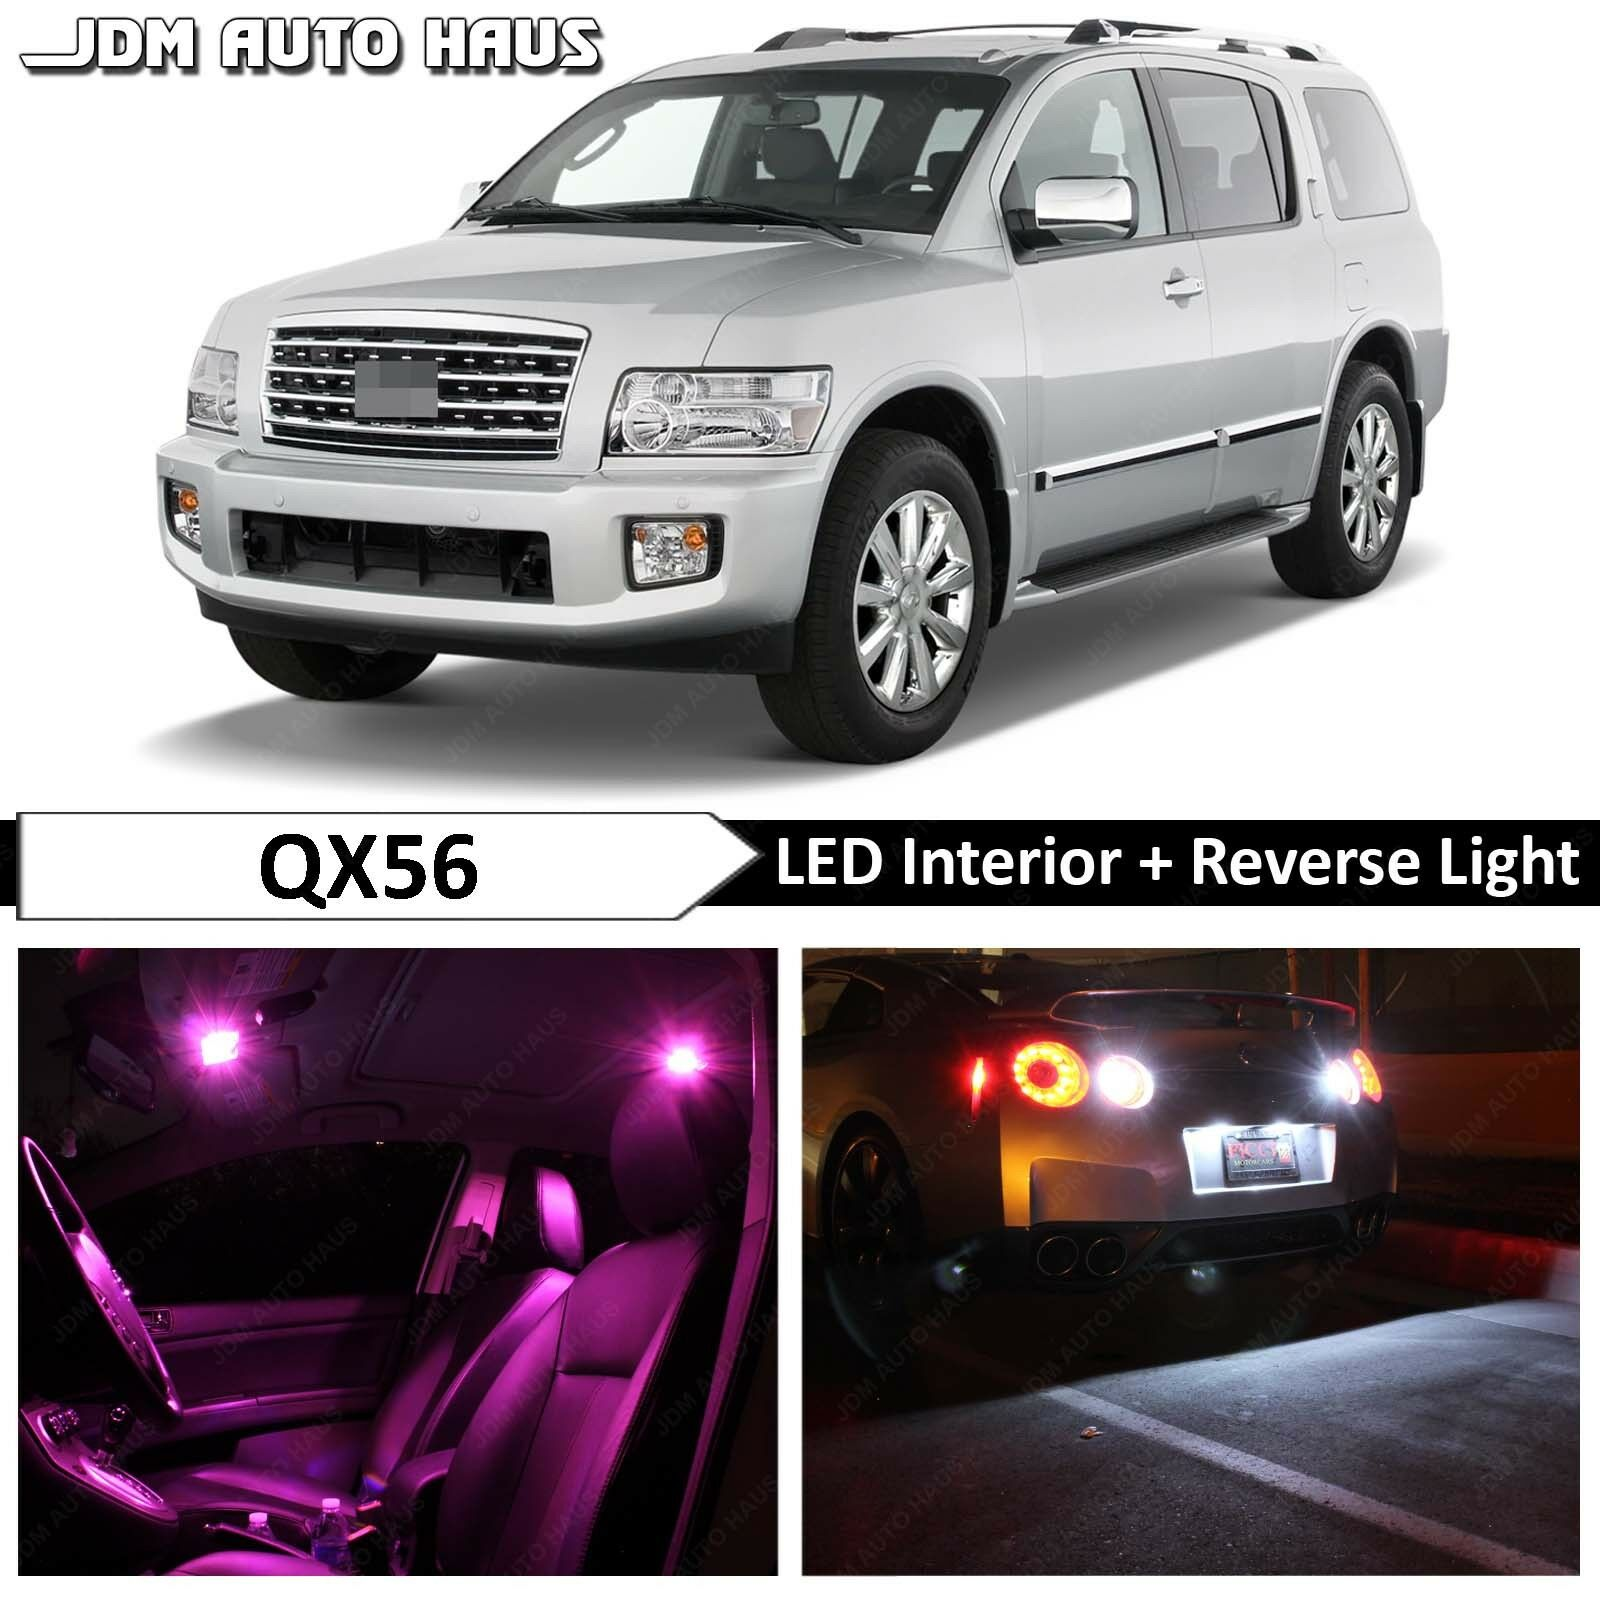 TOOL 18 x Ultra Blue Interior LED Lights Package For 2004-2010 Infiniti QX56